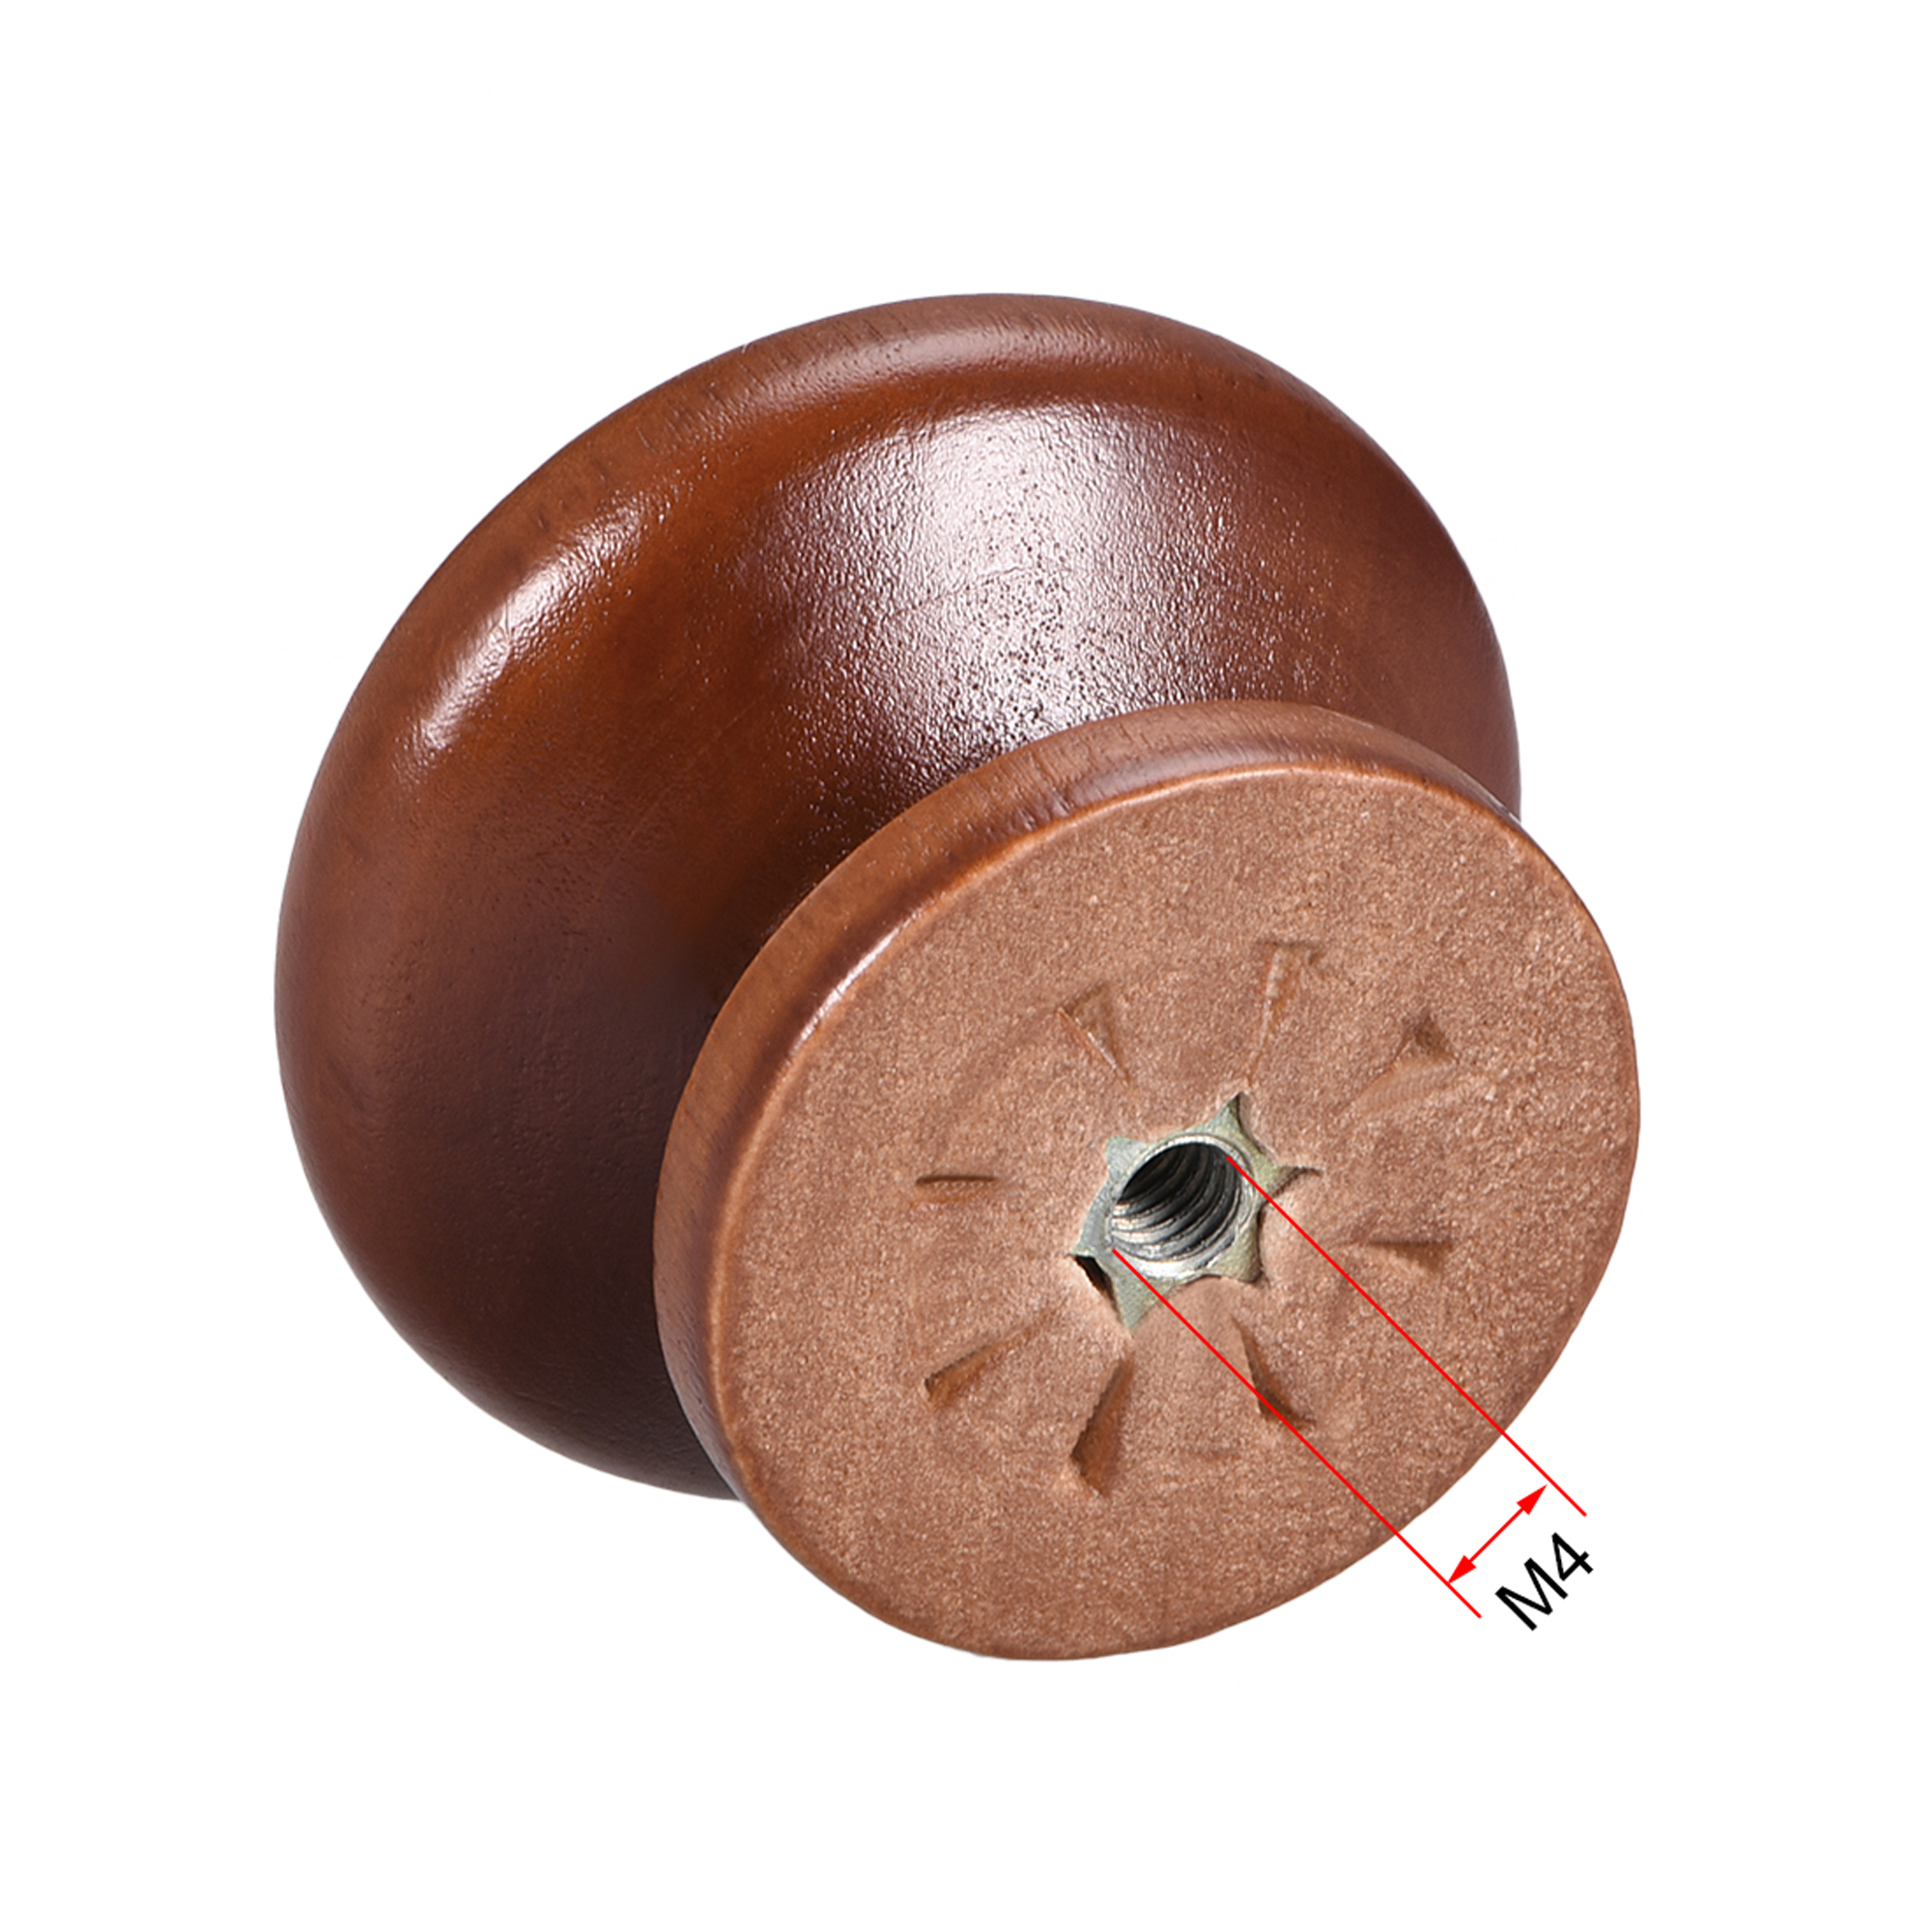 Cabinet Round Pull Knobs 35mm Dia Bedroom Kitchen Dark Red Elm Wood 5pcs - image 2 of 4